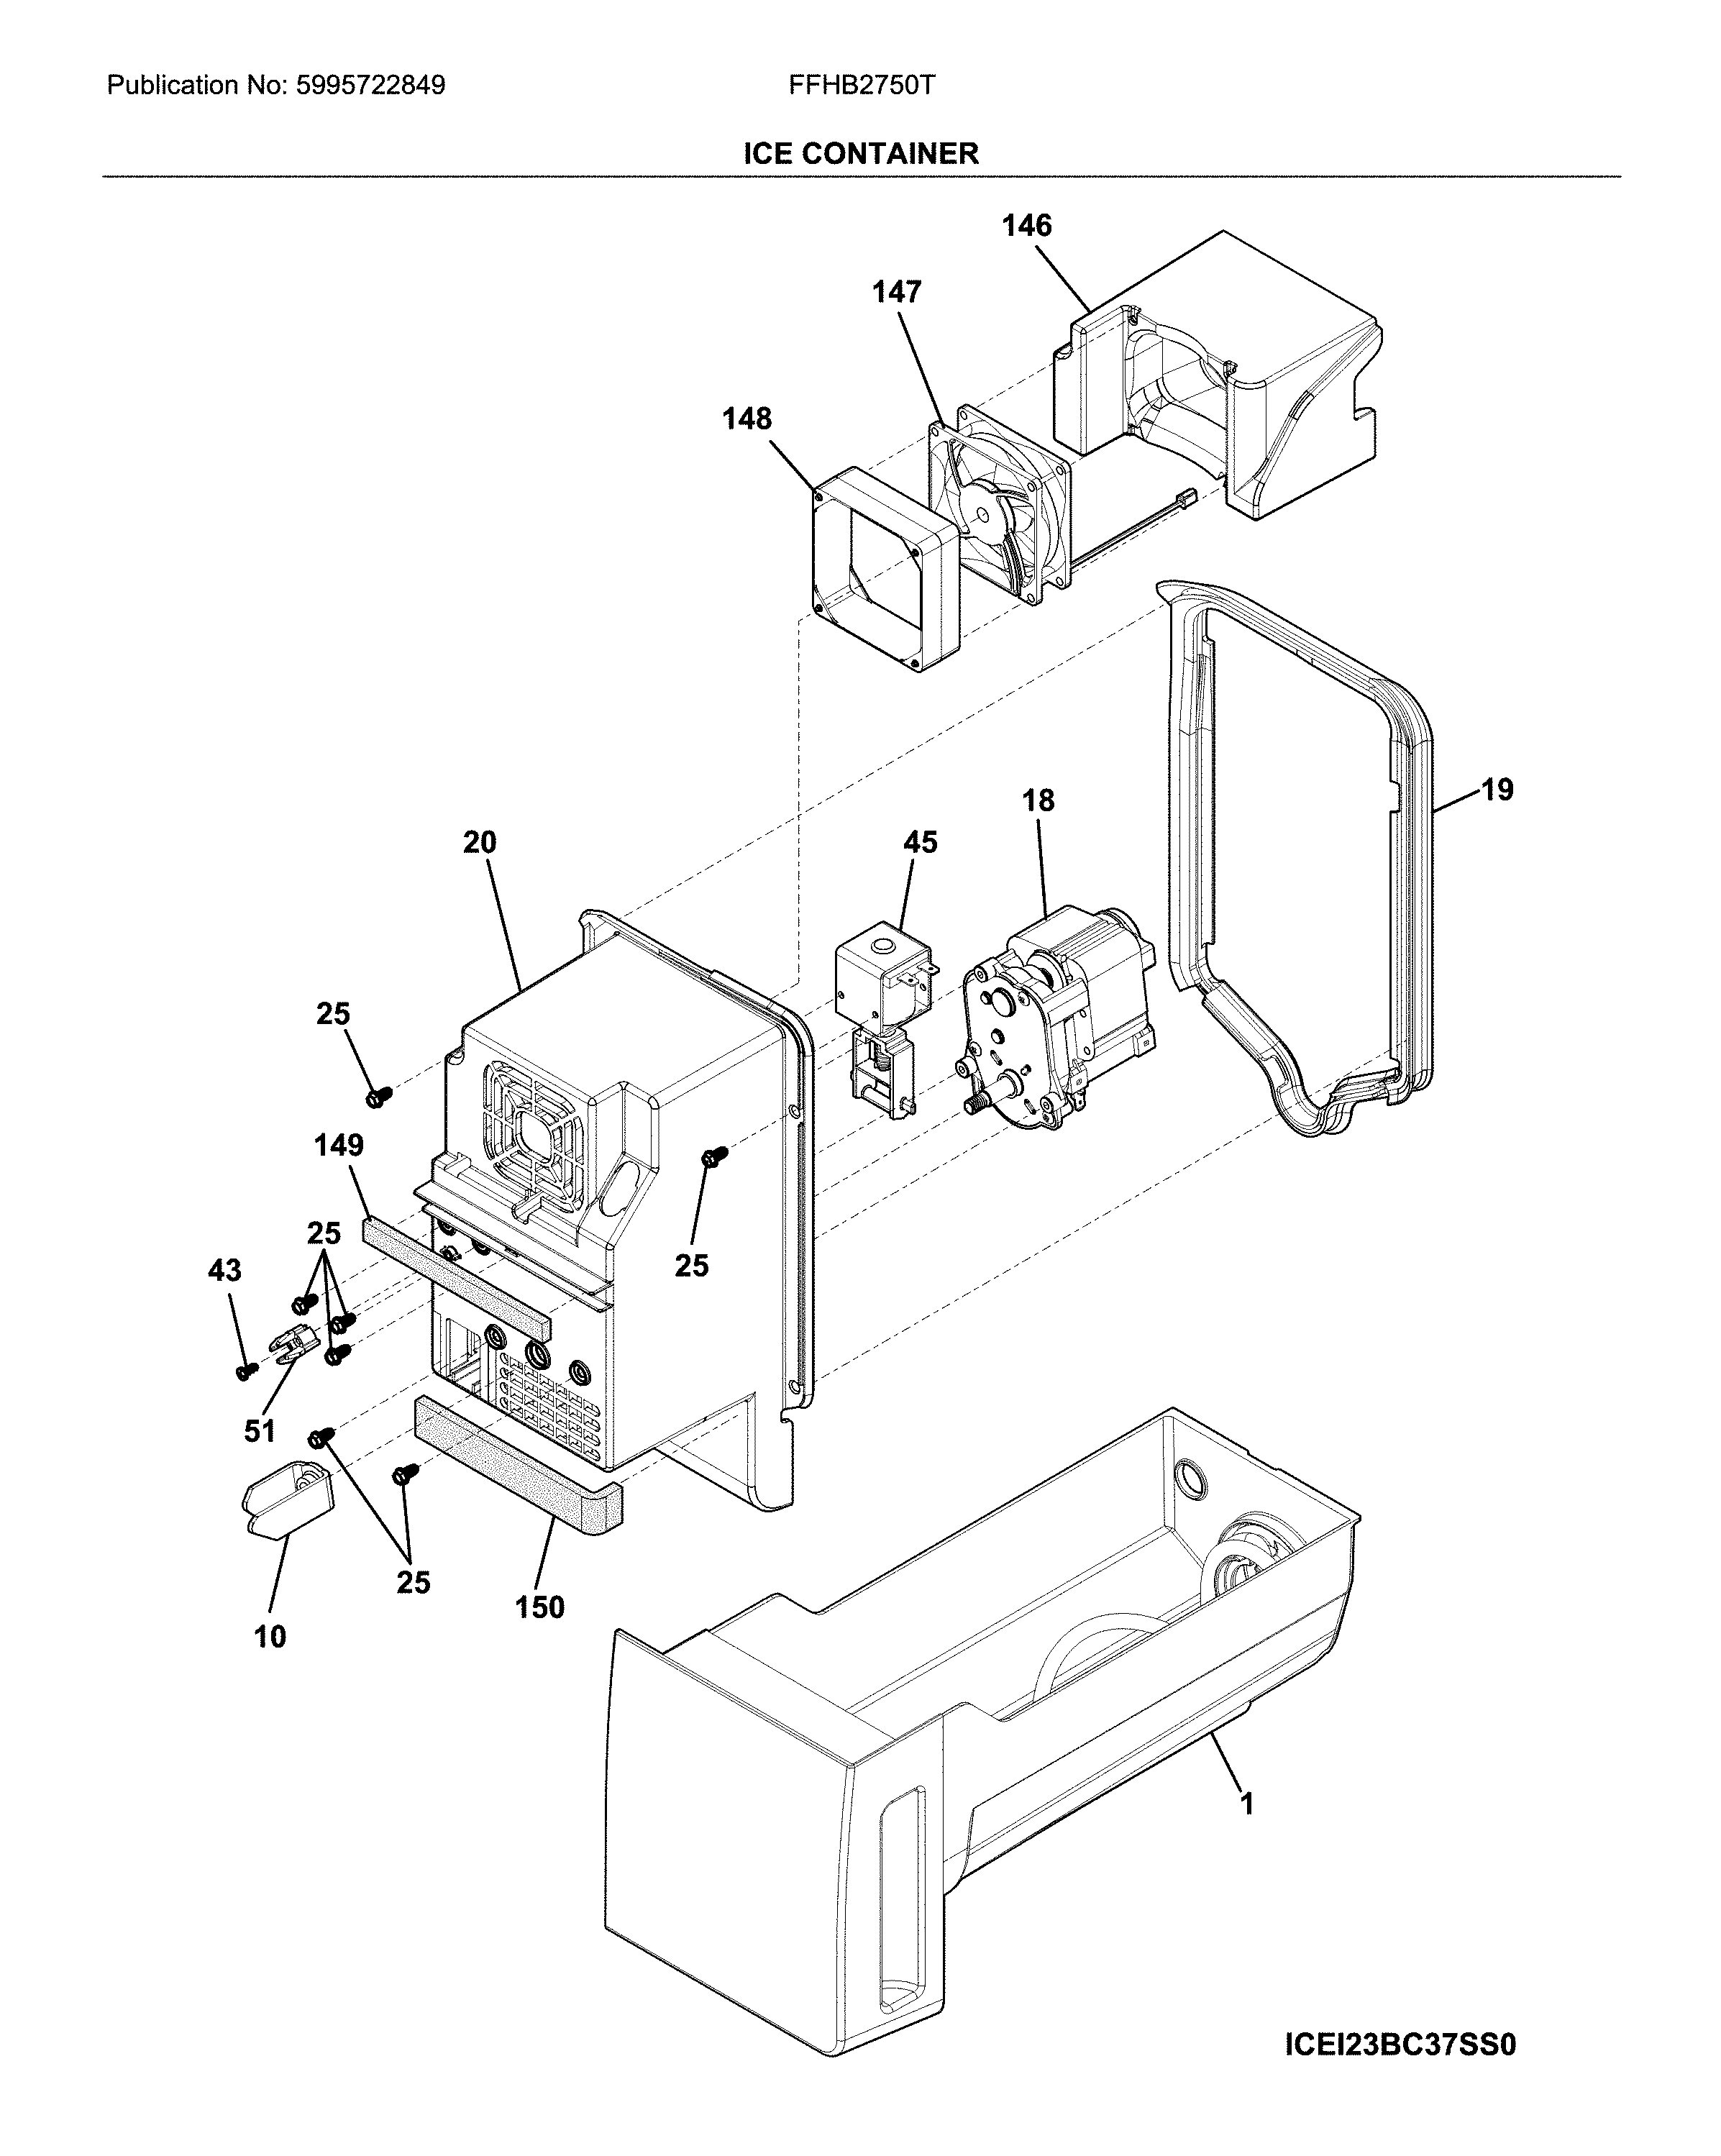 Frigidaire FFHB2750TS0 ice container diagram